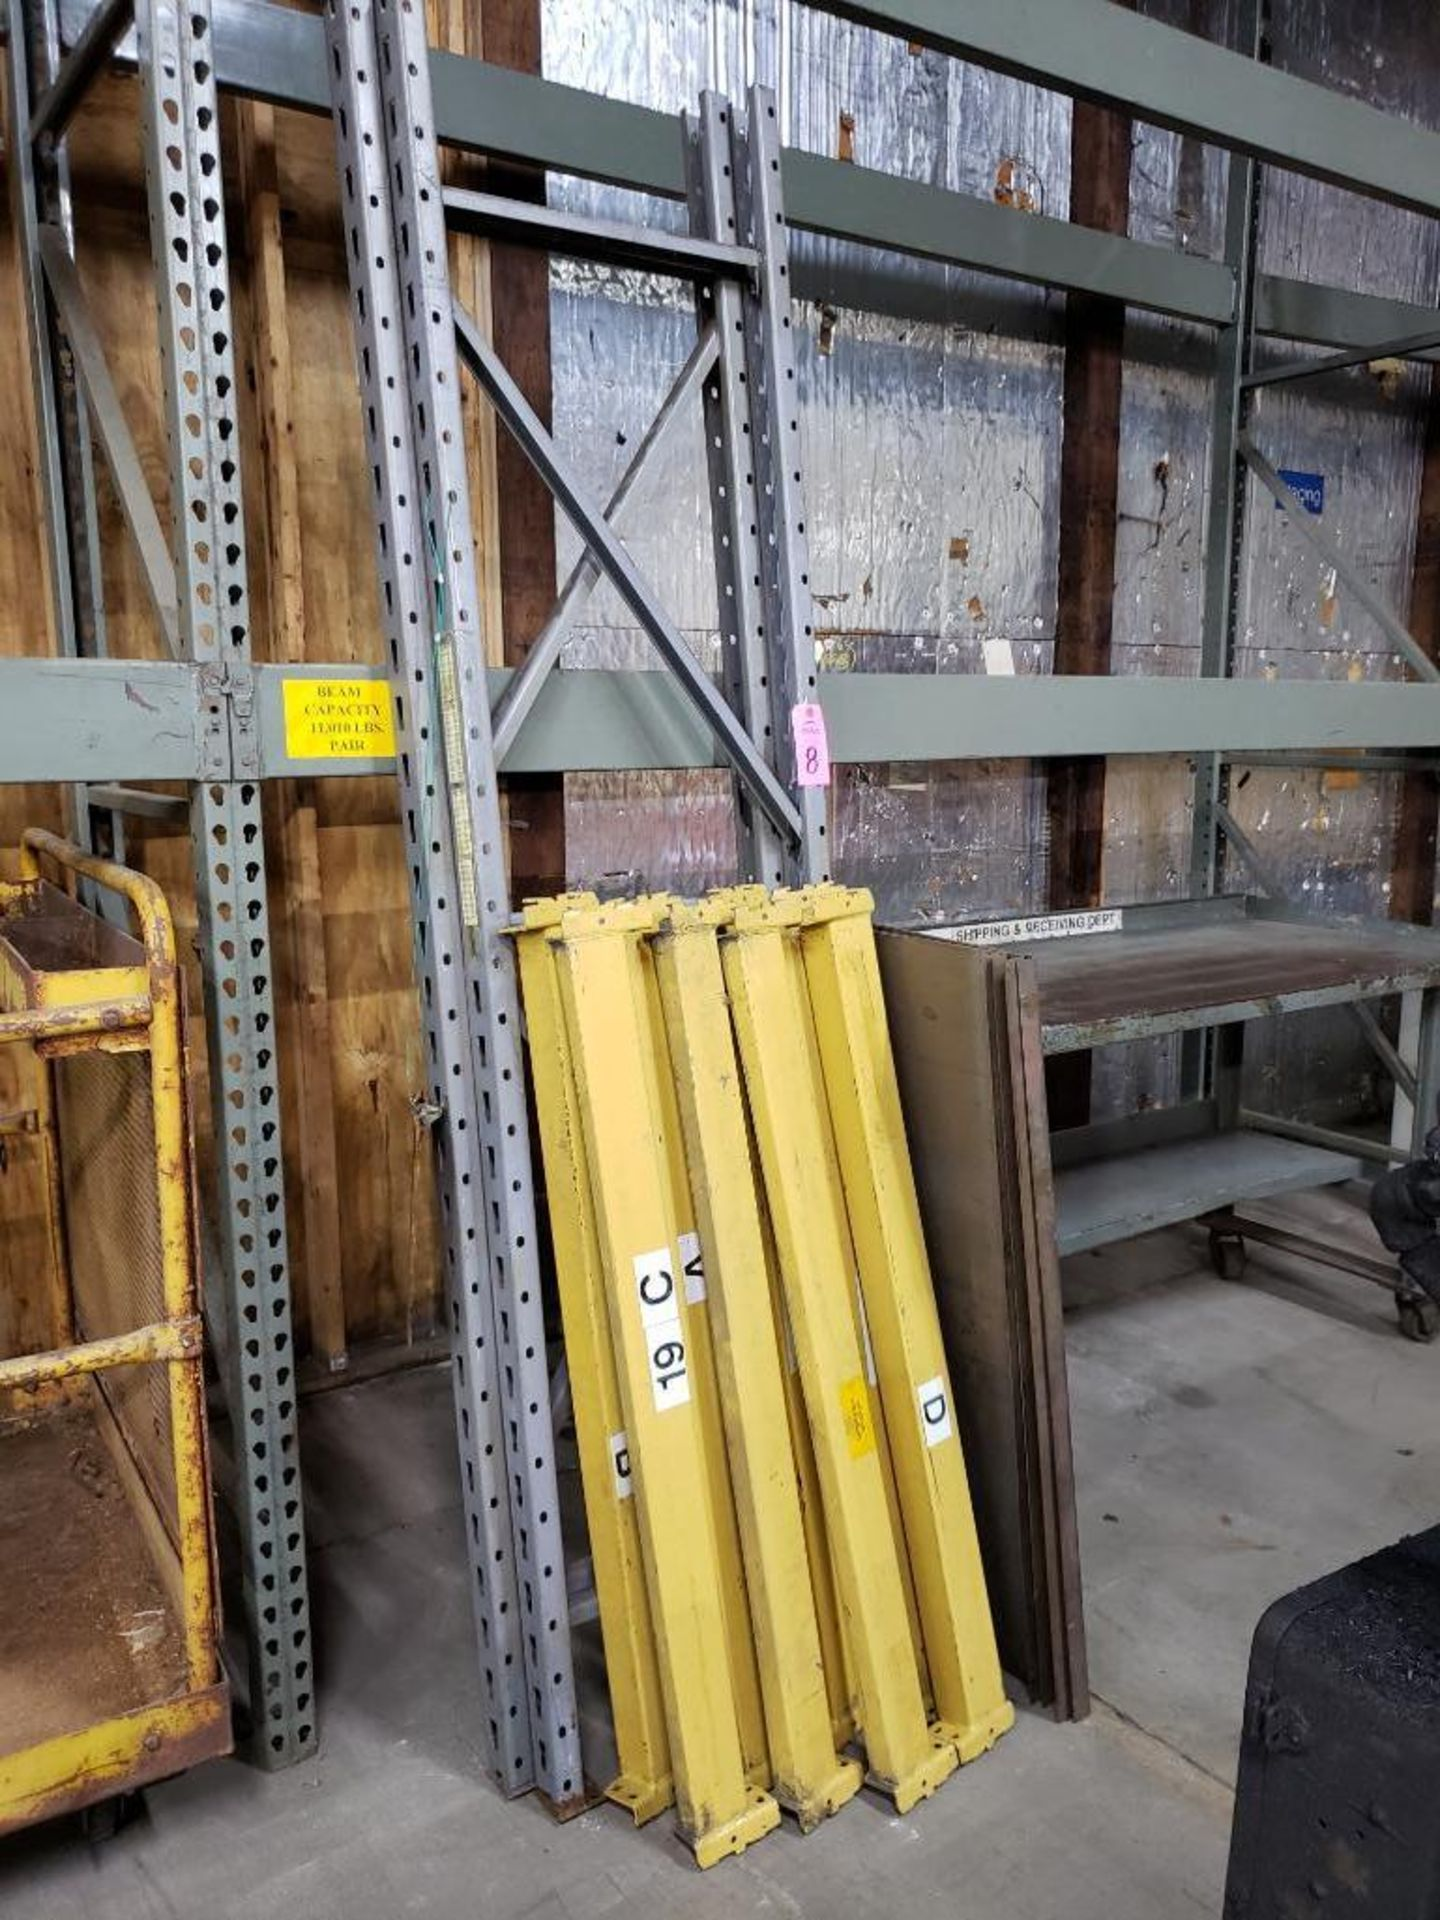 Lot 8 - 8' tall pallet rack section with 8 cross beams and steel deck.